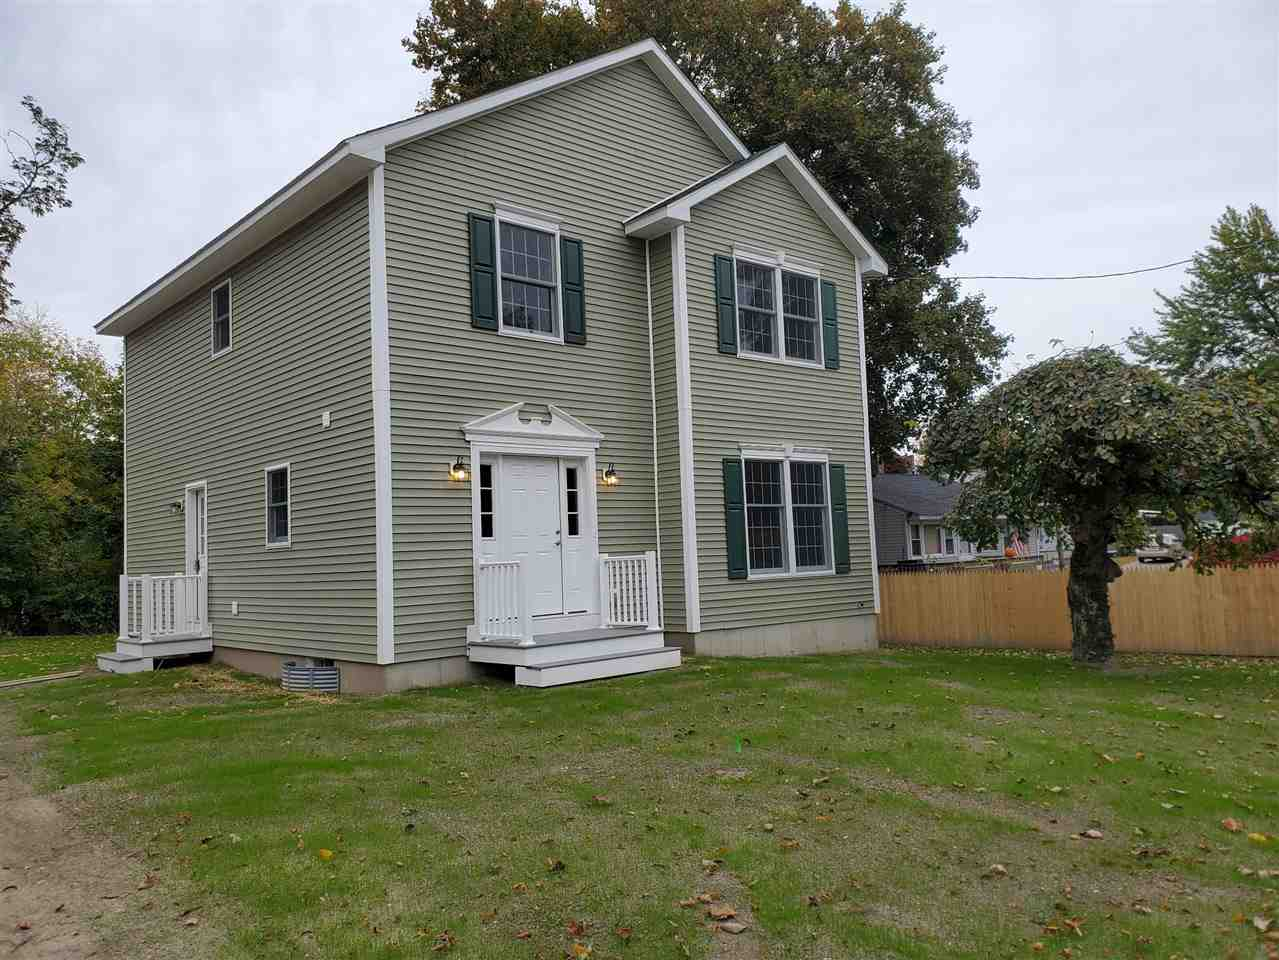 Photo of 46 Allison Street Concord NH 03301